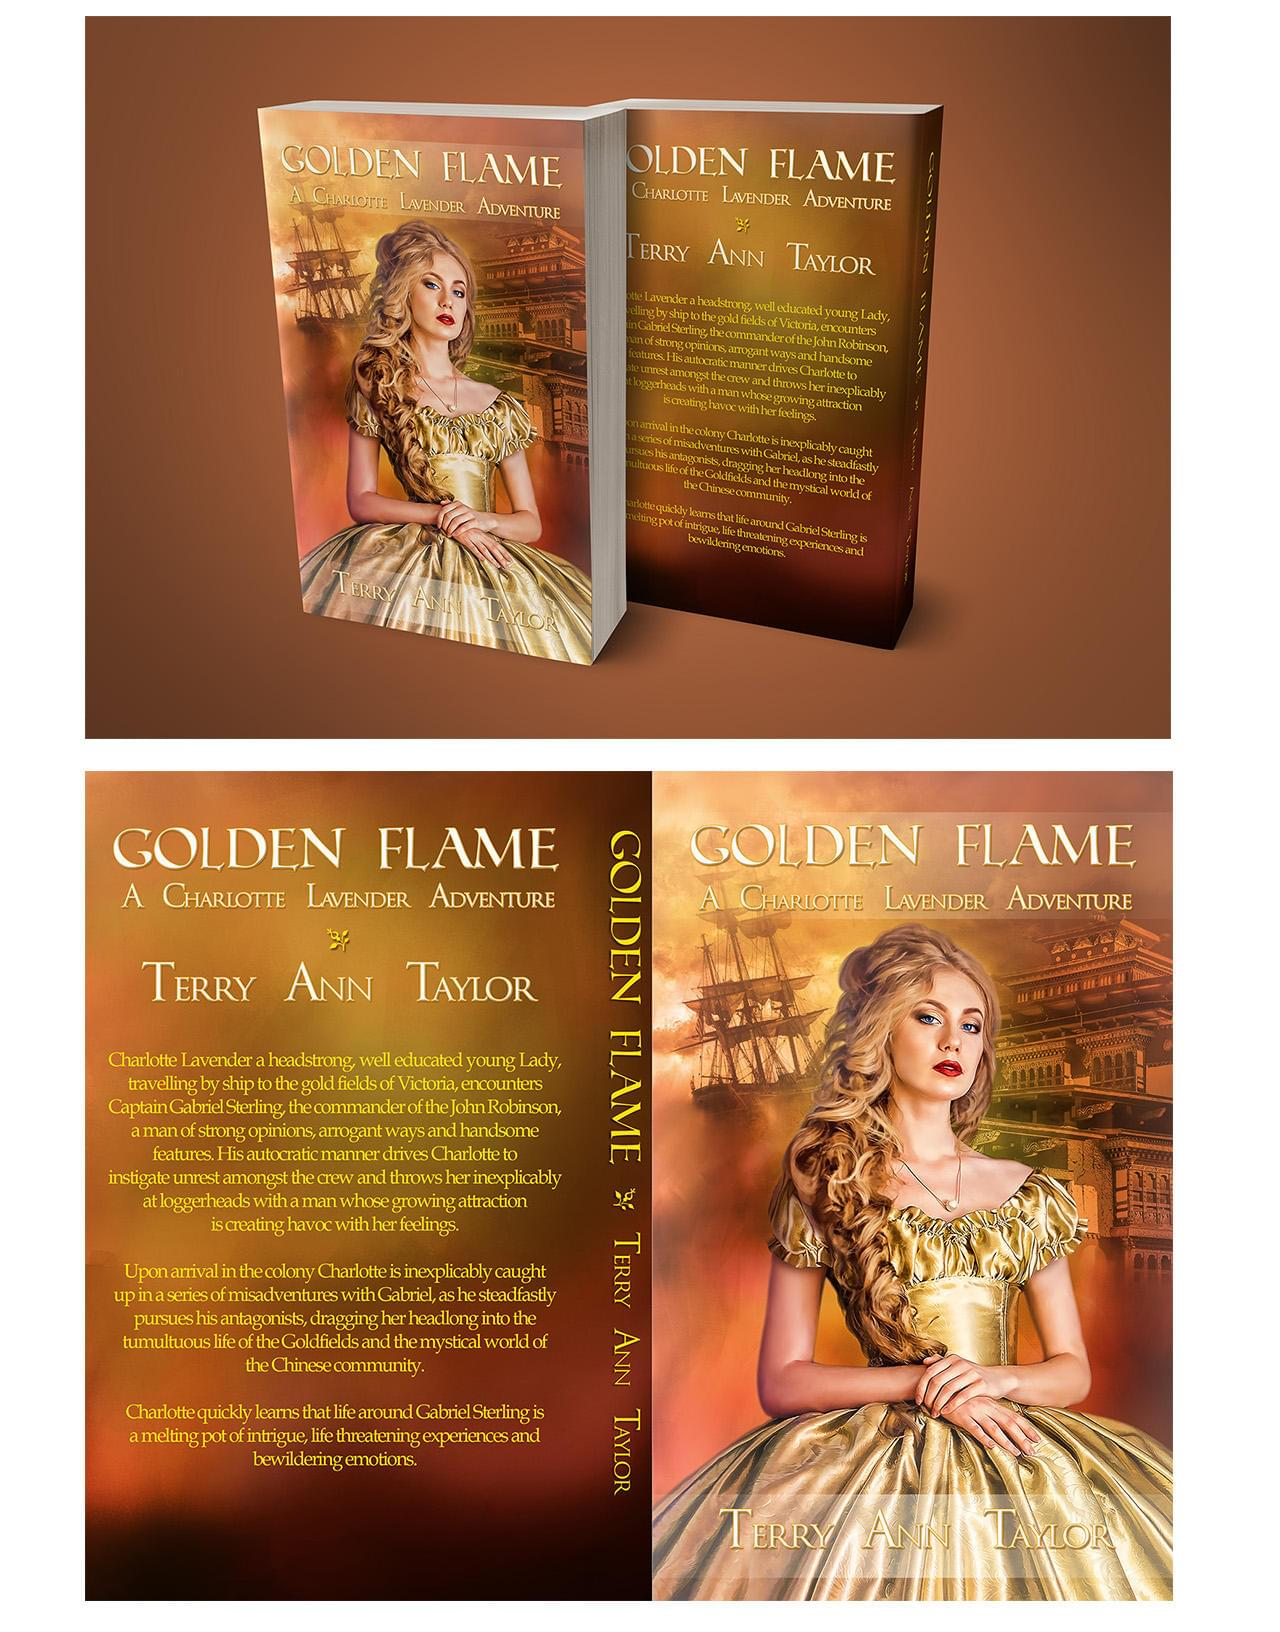 Book Covers - Hi-End Images for Book Covers - Romance - Historical - Fantasy - Full Cover Design by CrArt - 113971